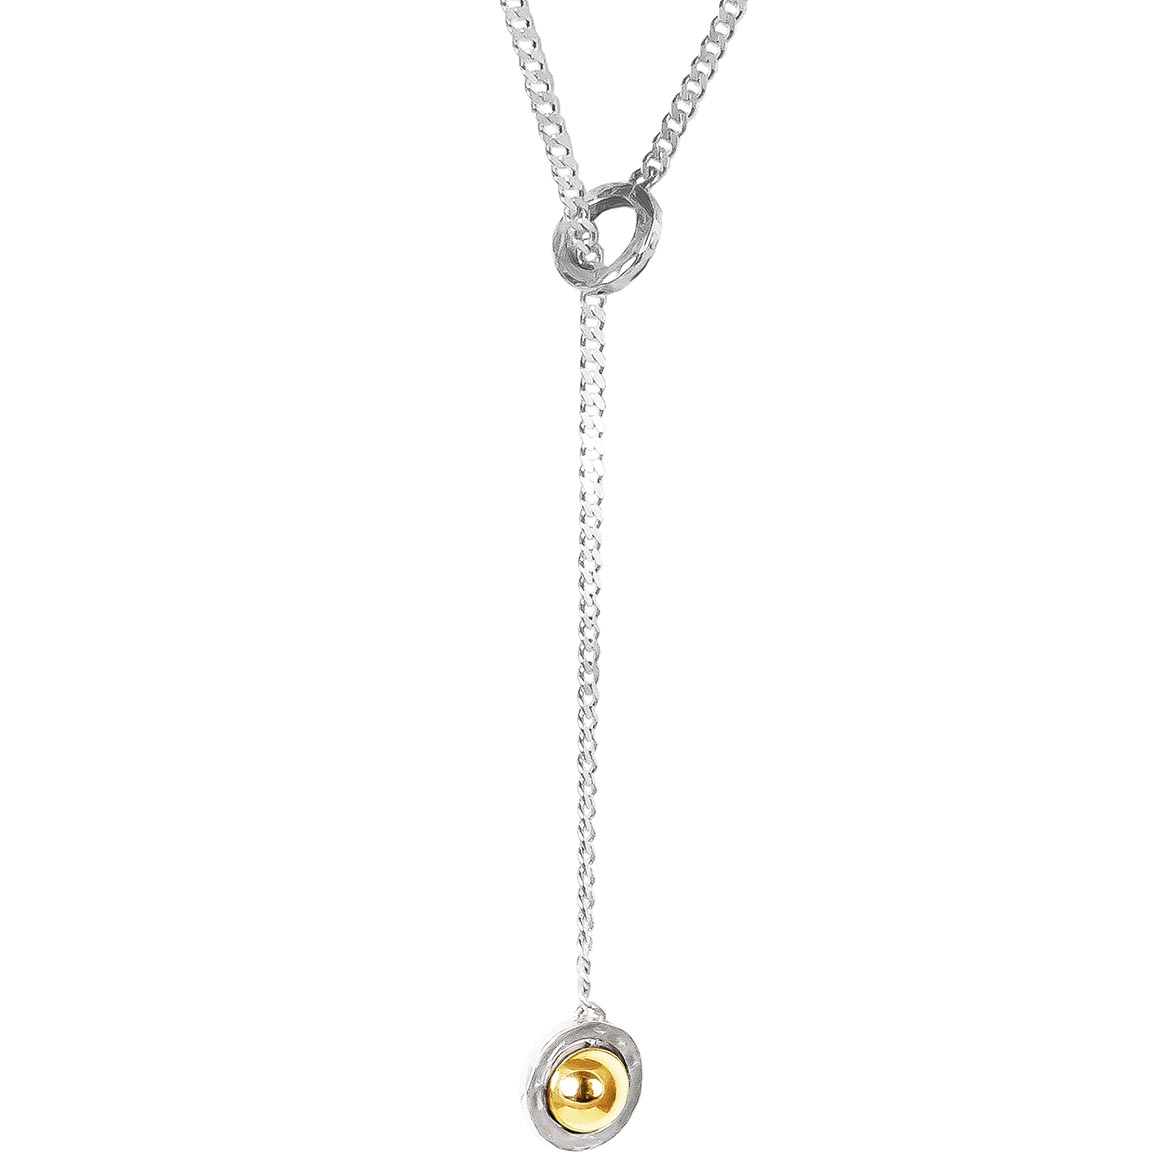 Atticus Large Charm Lariet Necklace   Long | Polished Gold Detail | Trada Marketplace